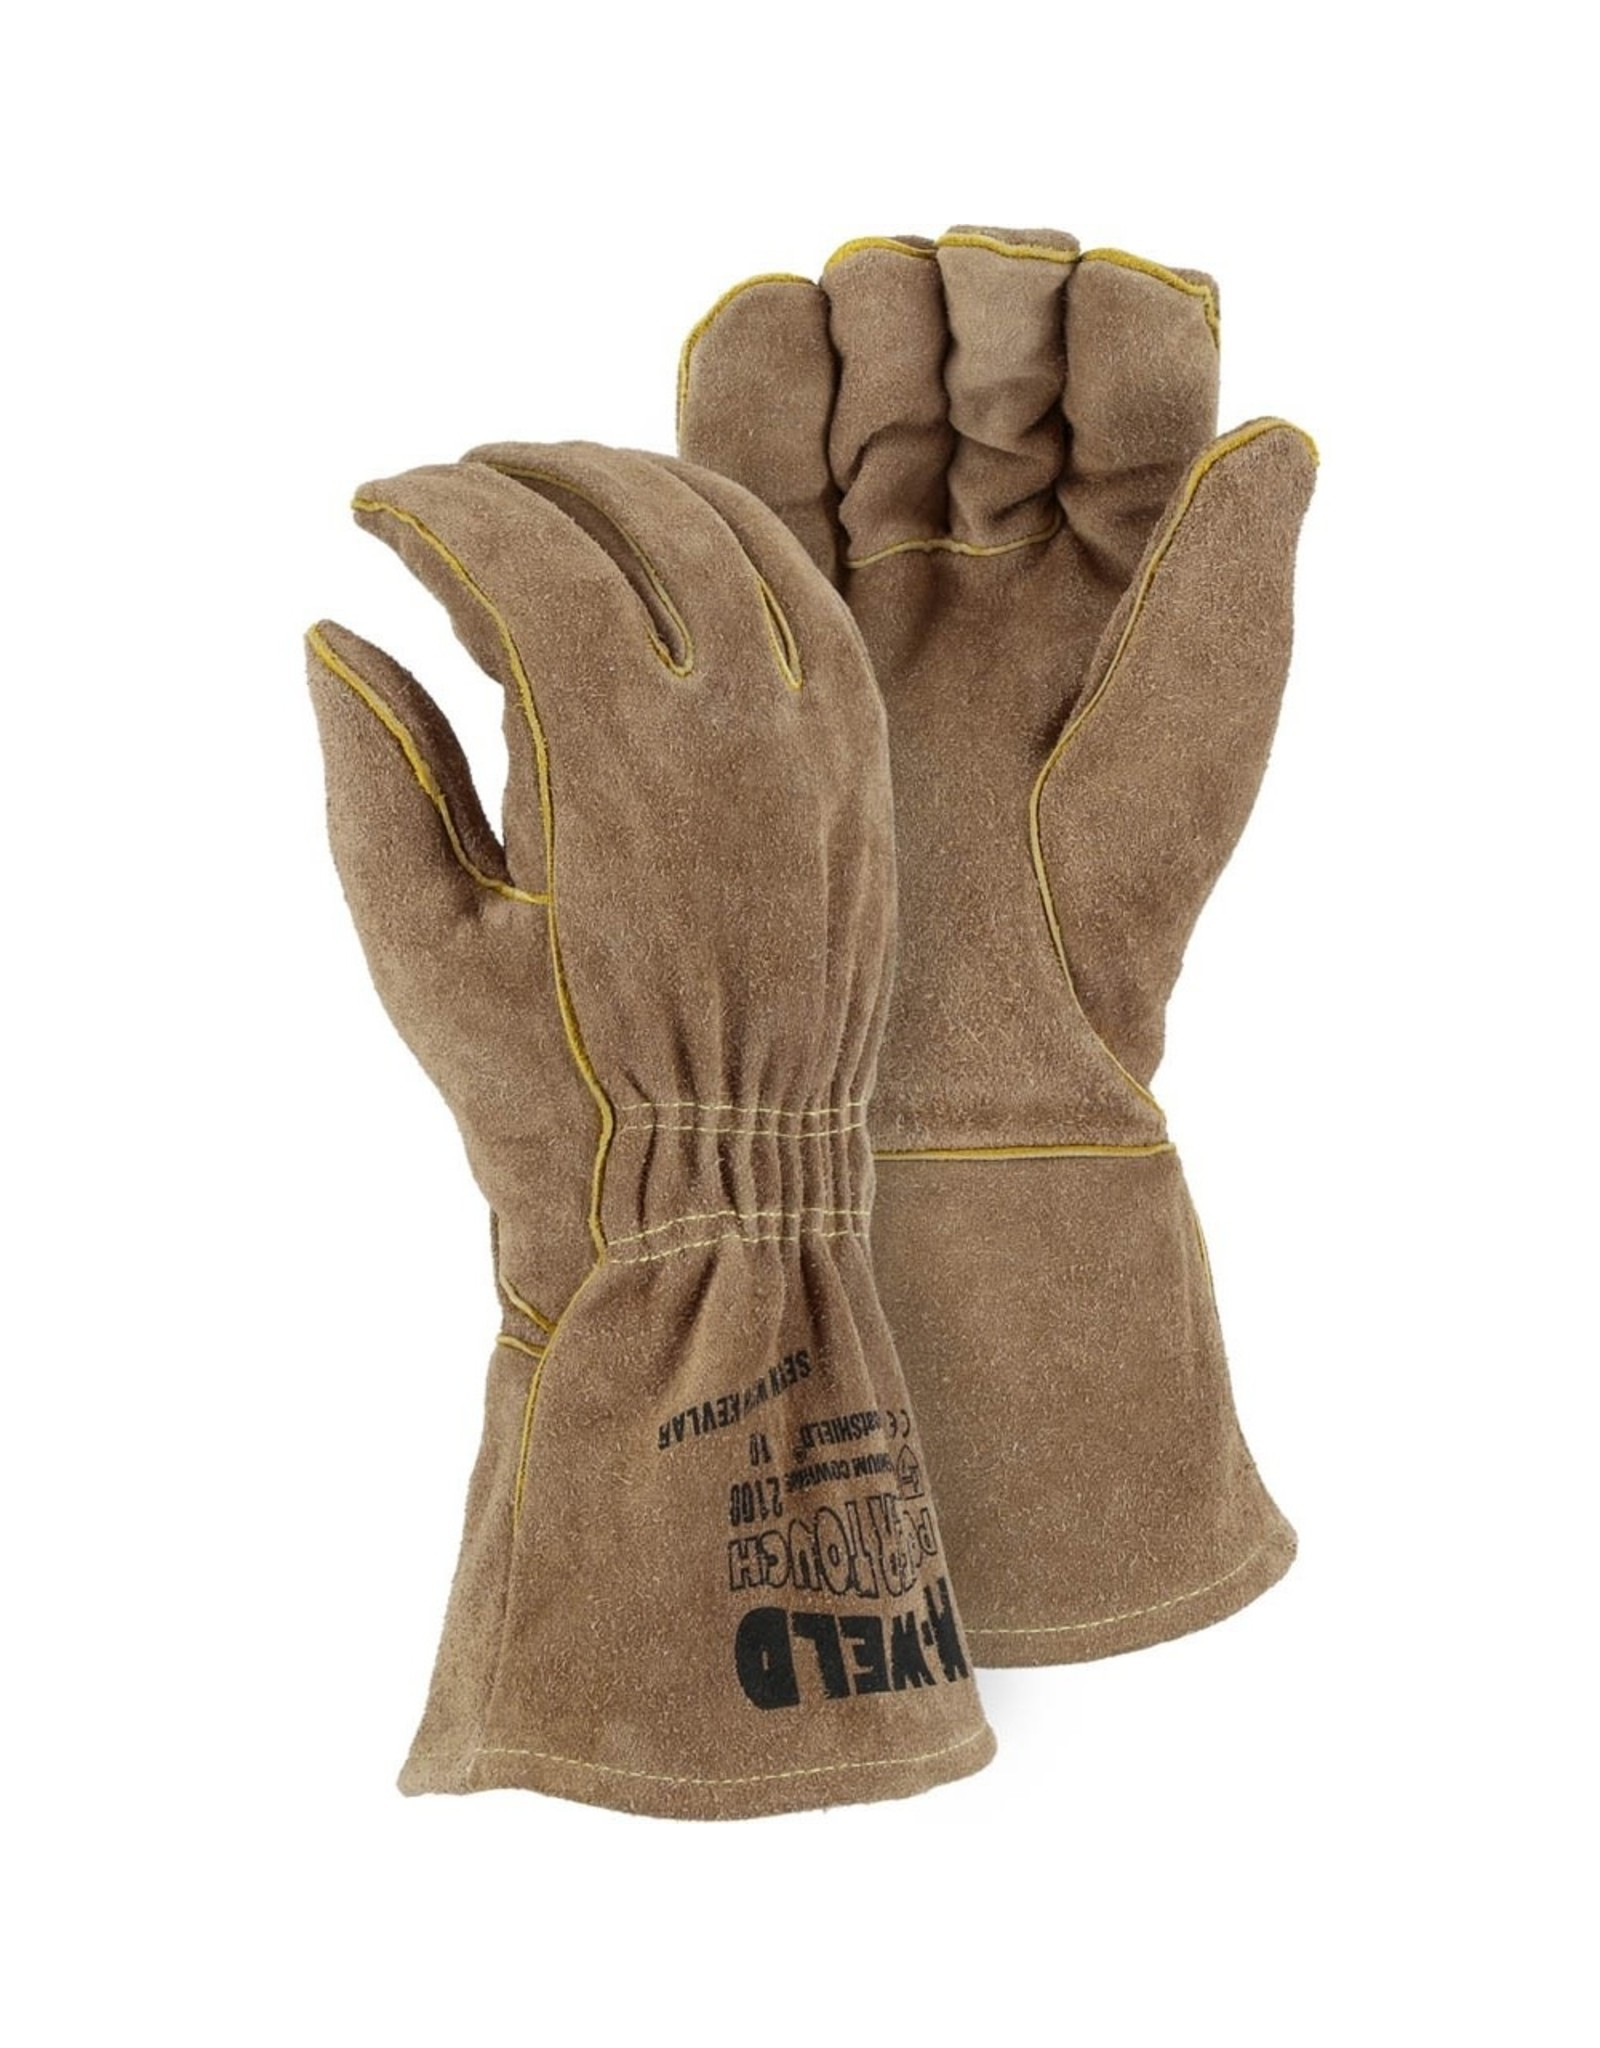 Majestic Glove FR Leather Welders Glove with Elastic Wrist